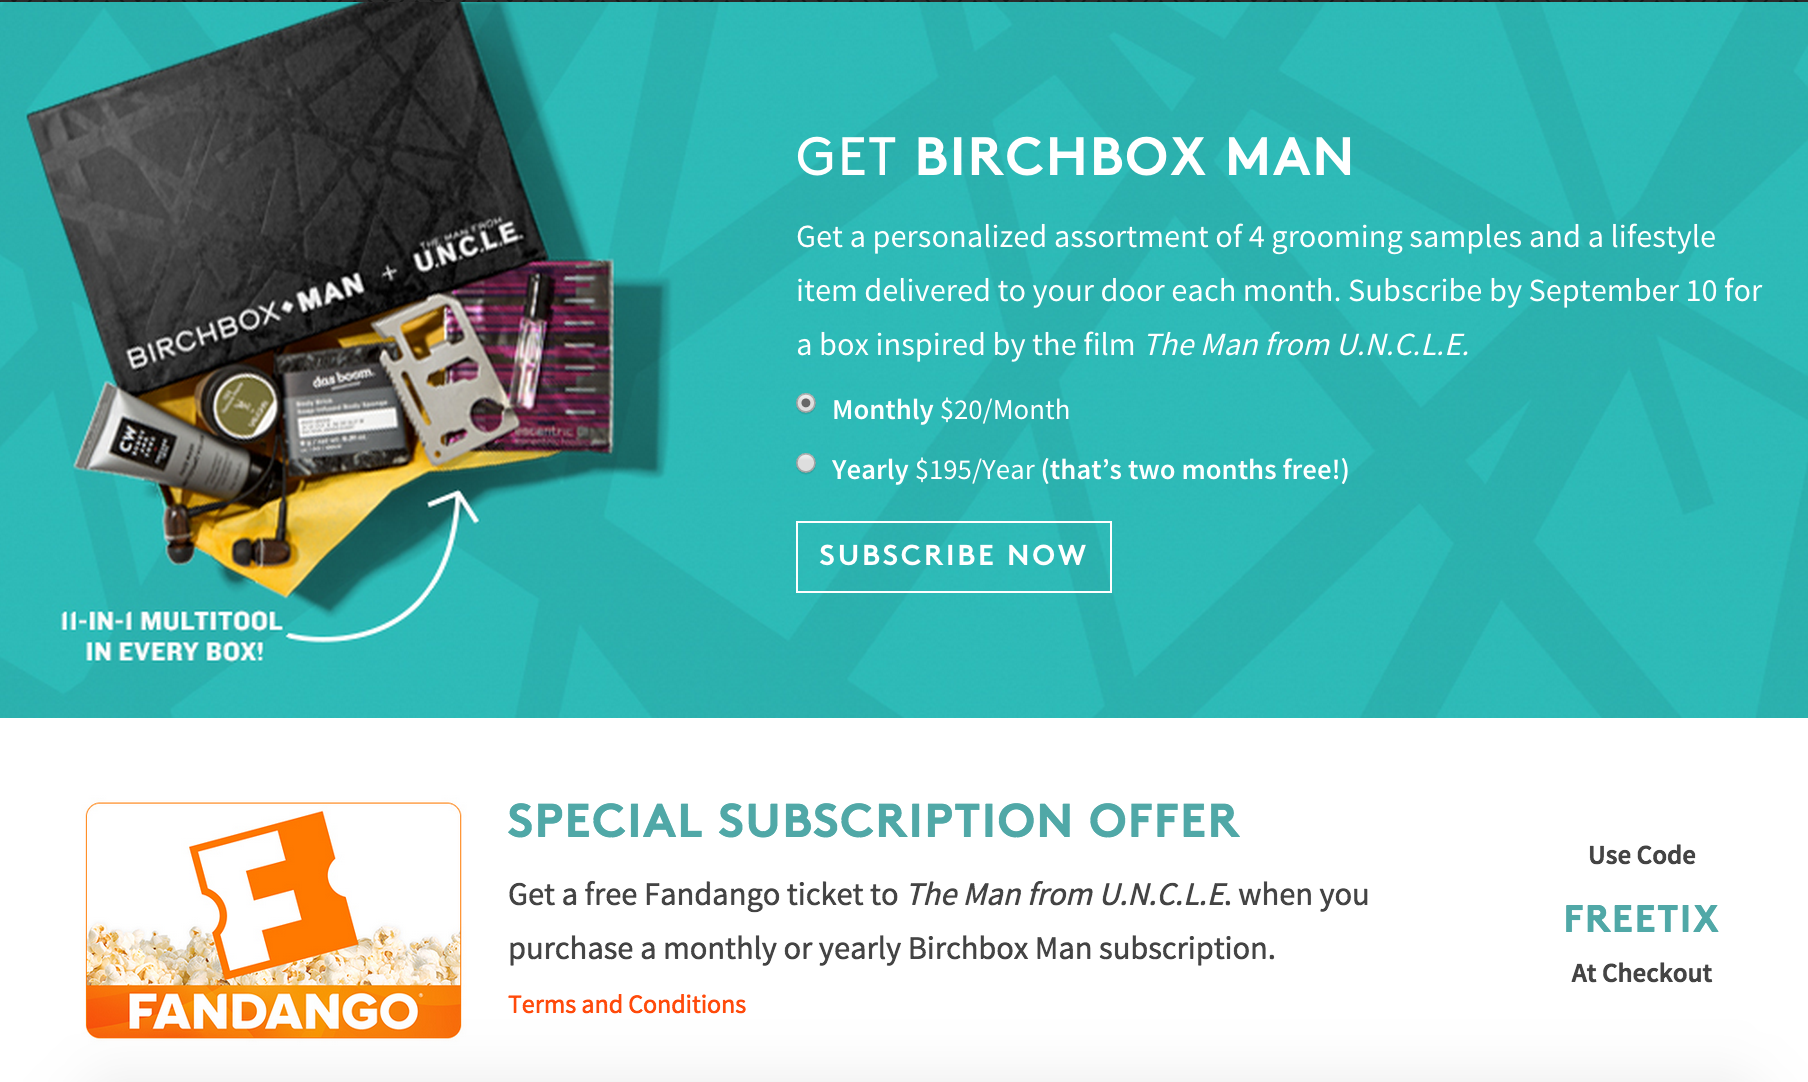 Birchbox Man Free Movie Ticket!